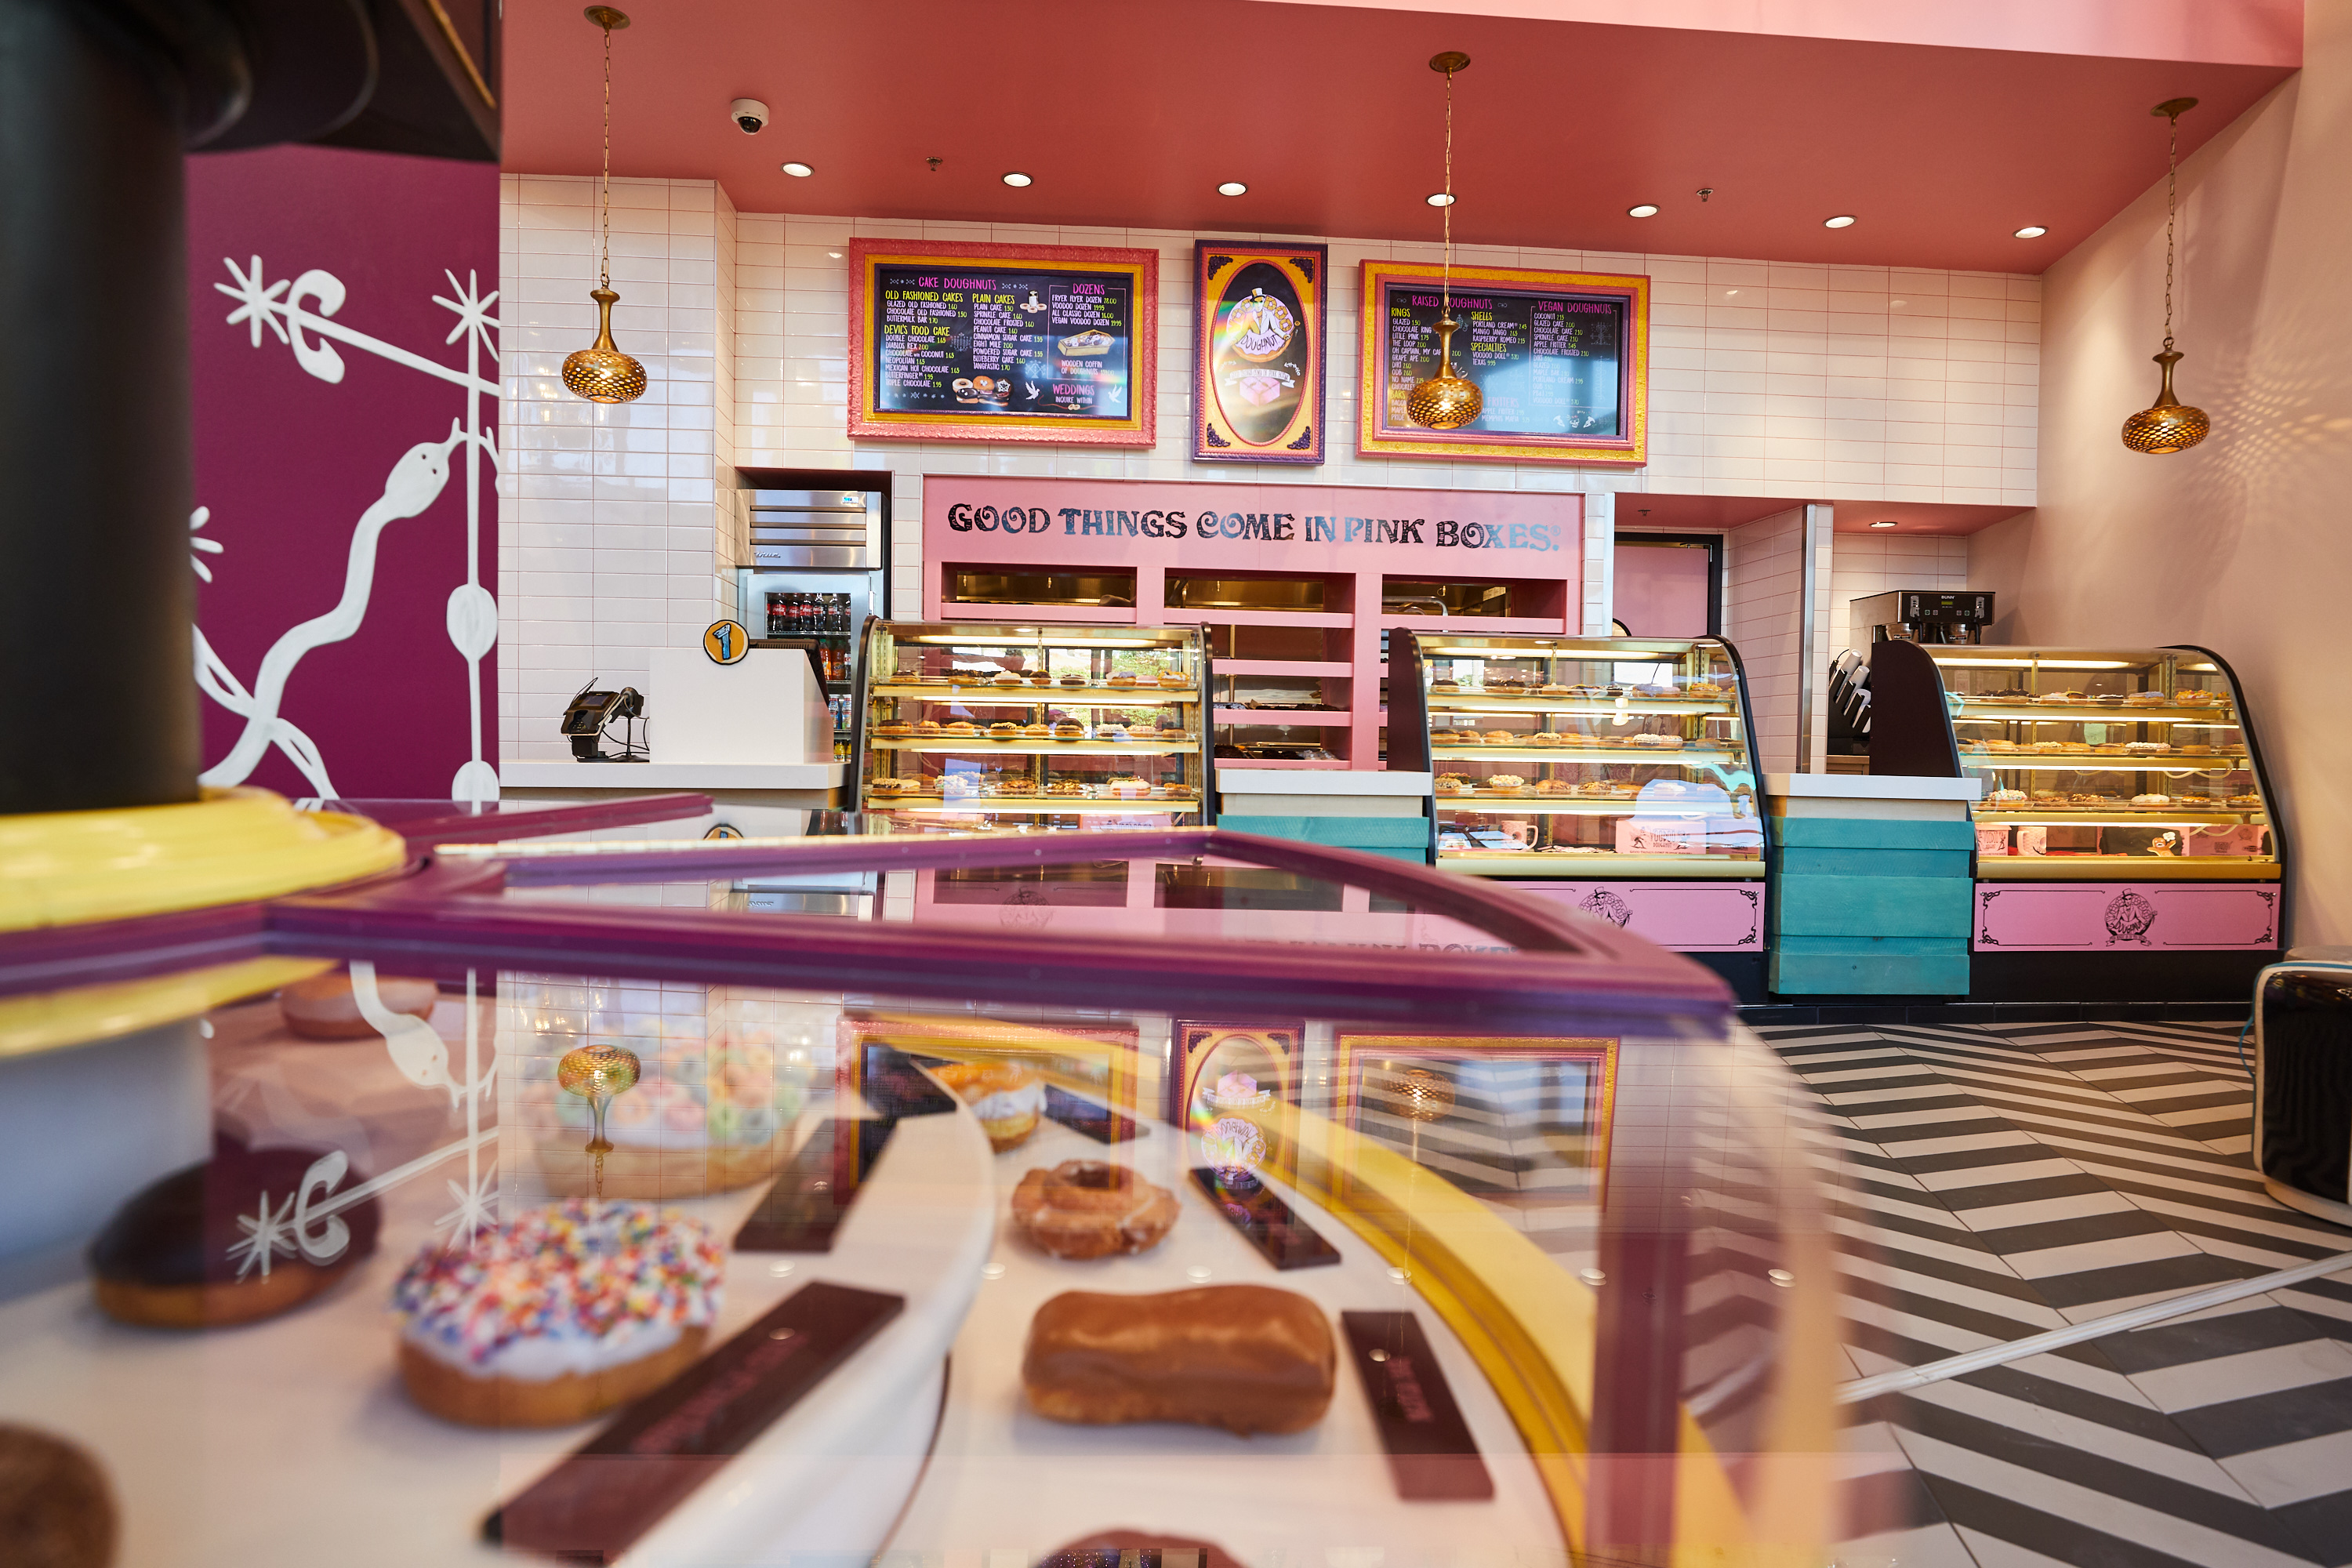 Enjoy a late night snack at Voodoo Doughnut.